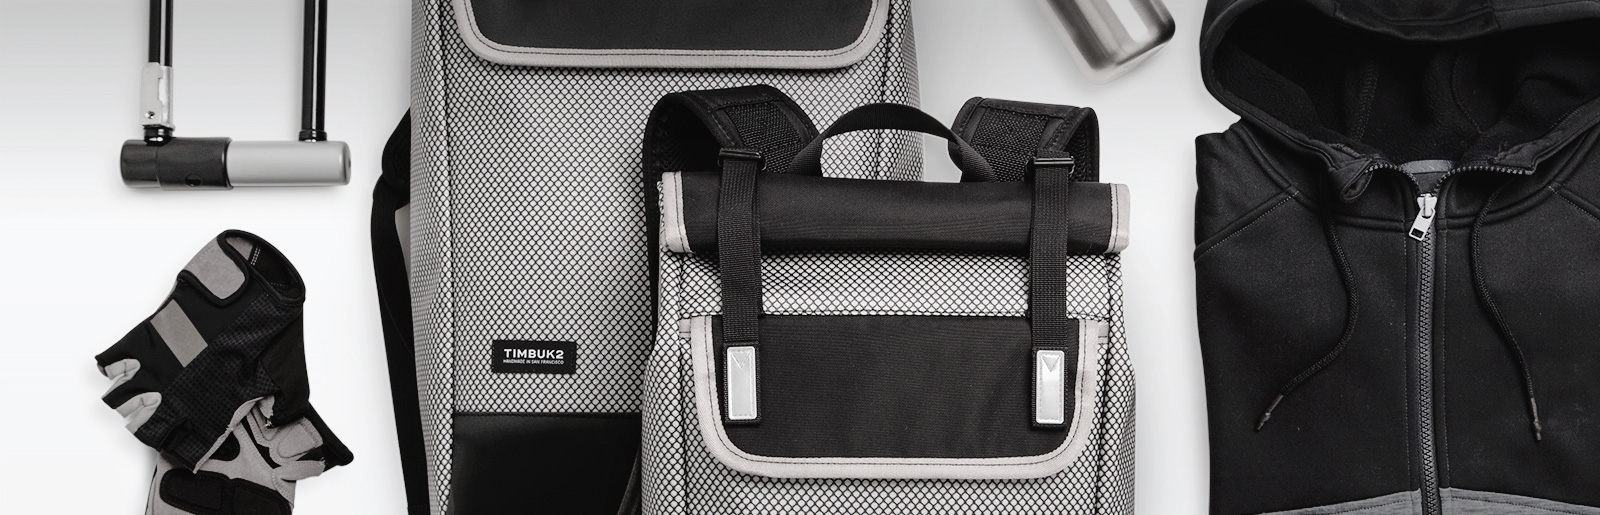 Design your own Custom Timbuk2 Backpack or Messenger Bag.